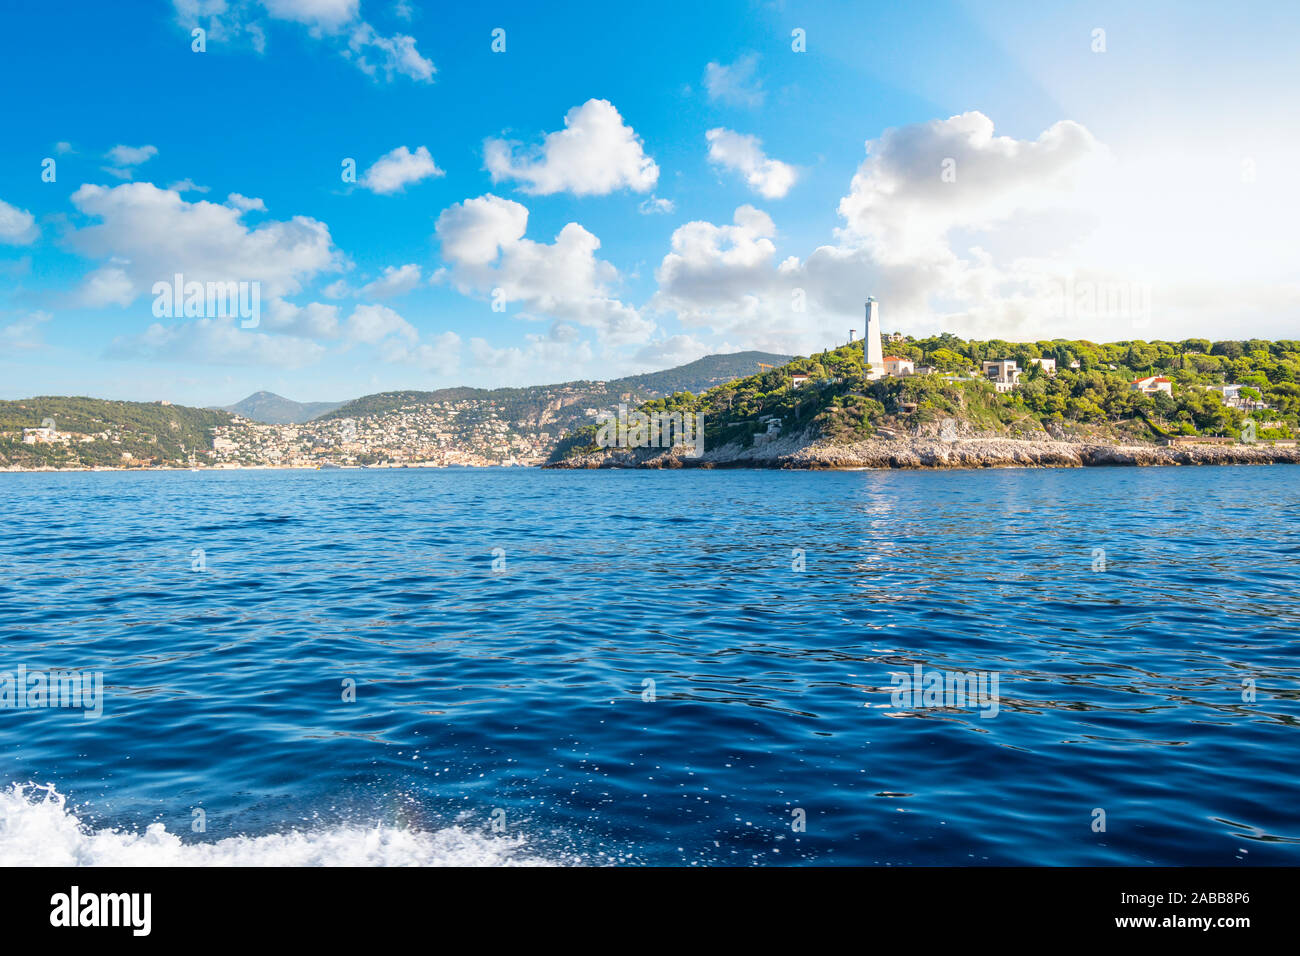 View from the Mediterranean Sea of the Saint Jean Cap Ferrat lighthouse on the Southern coast of France and the French Riviera. Stock Photo